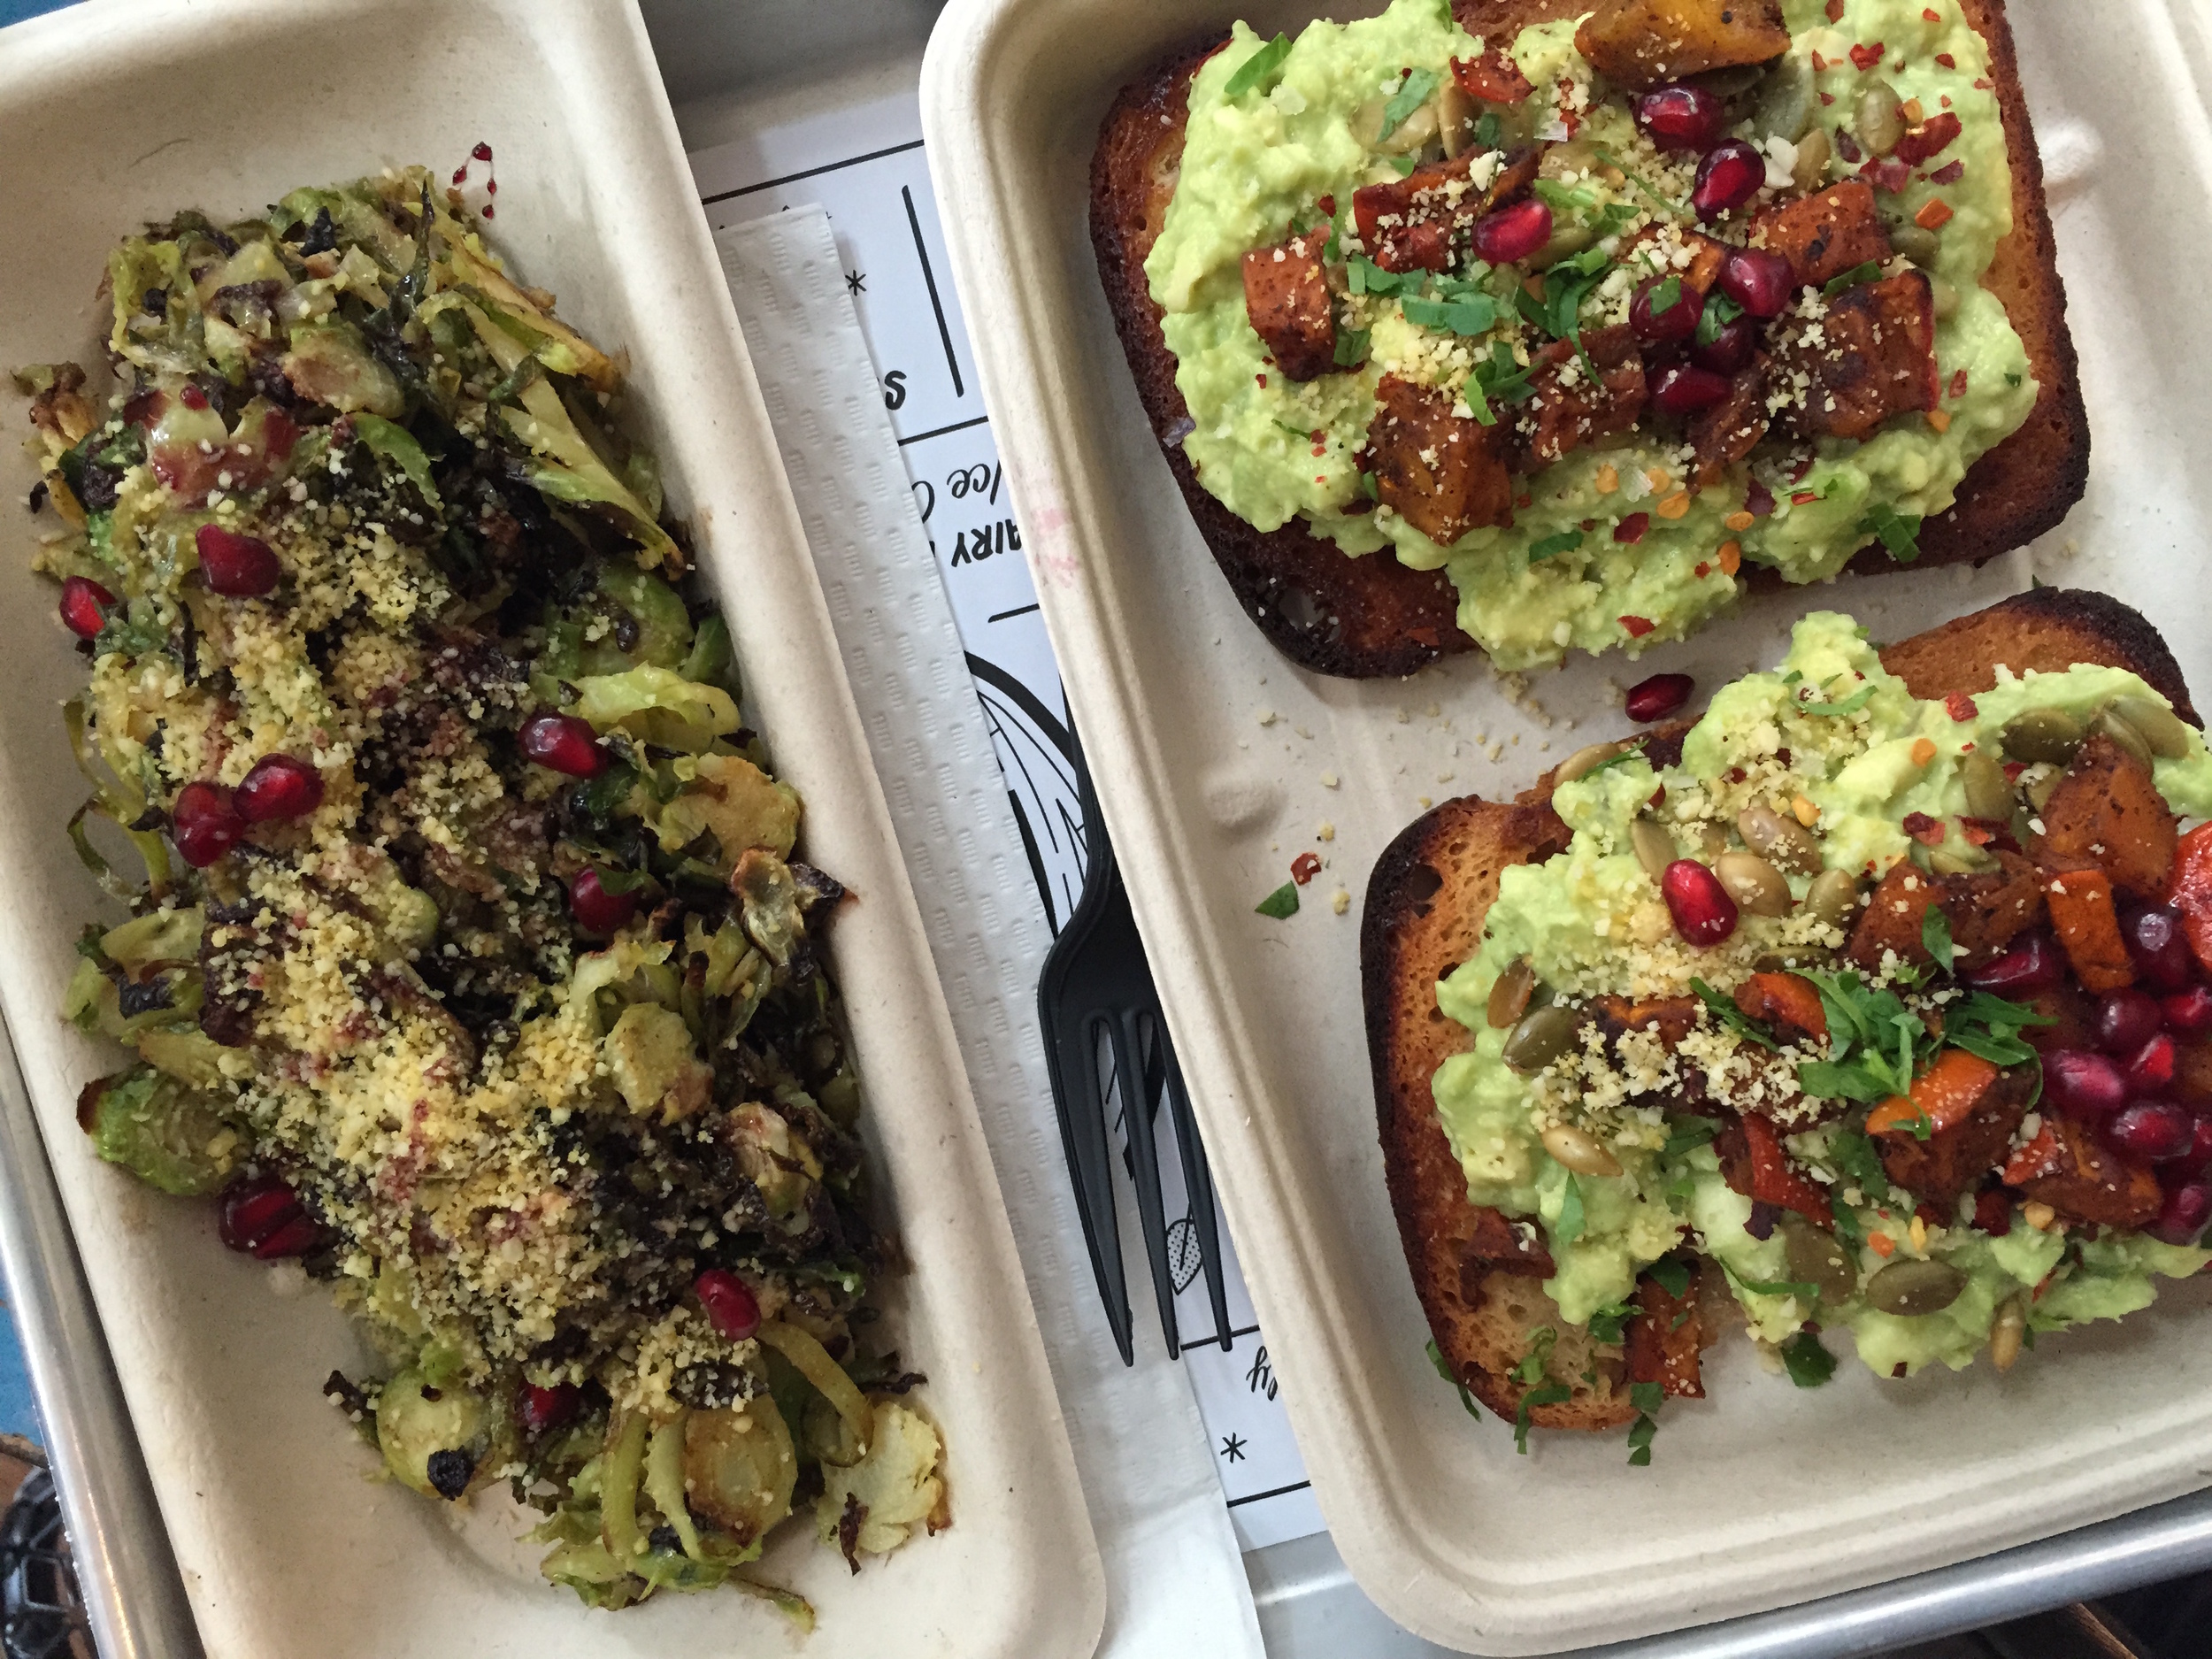 At by CHLOE. in NYC, we learned that avocado toast tastes great with a little sweet and crunch, and that brussels sprouts are ah-mazing.